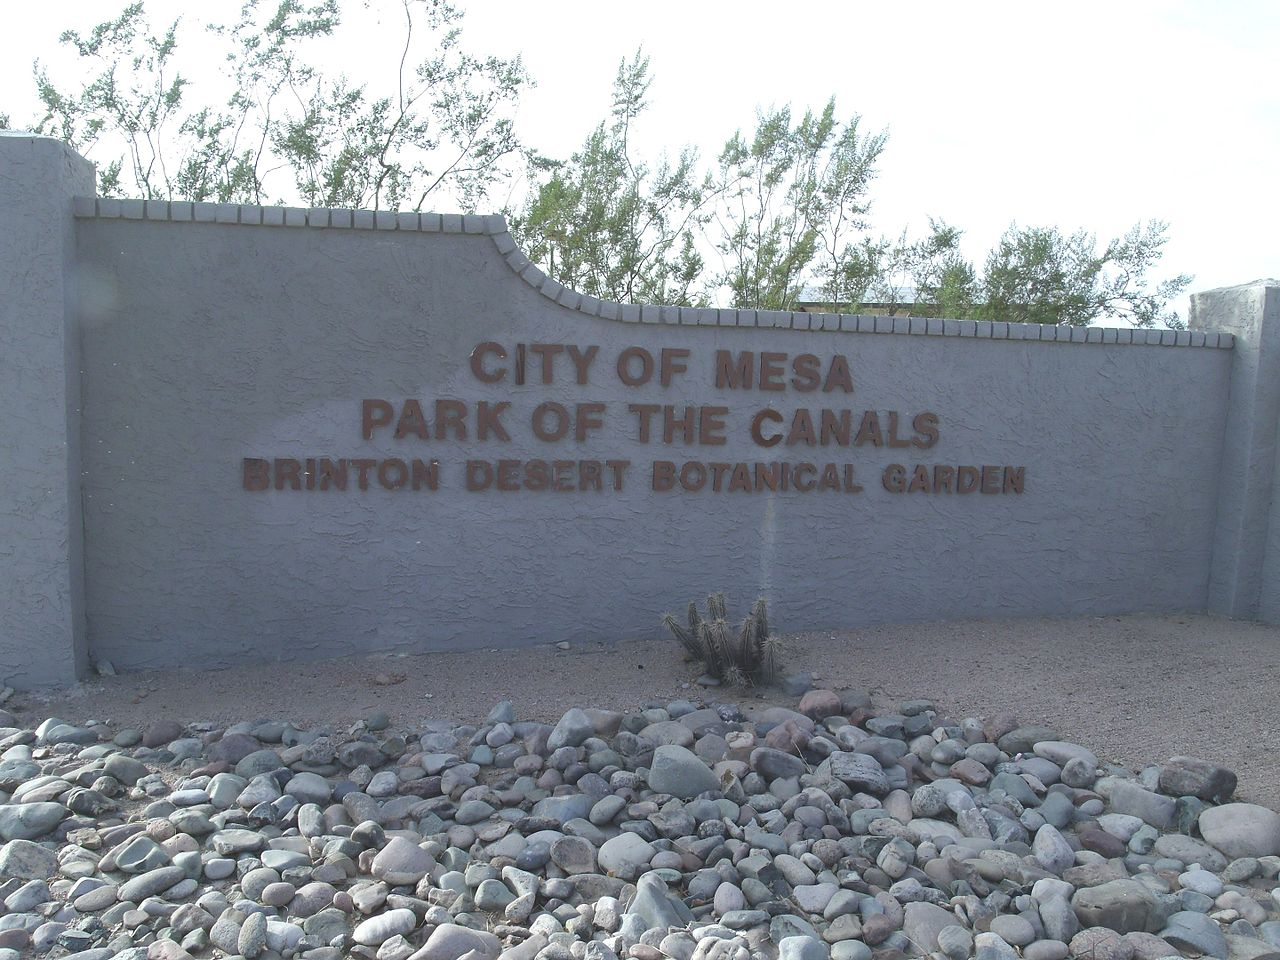 Beautiful Place To Visit In Mesa-Park of the Canals